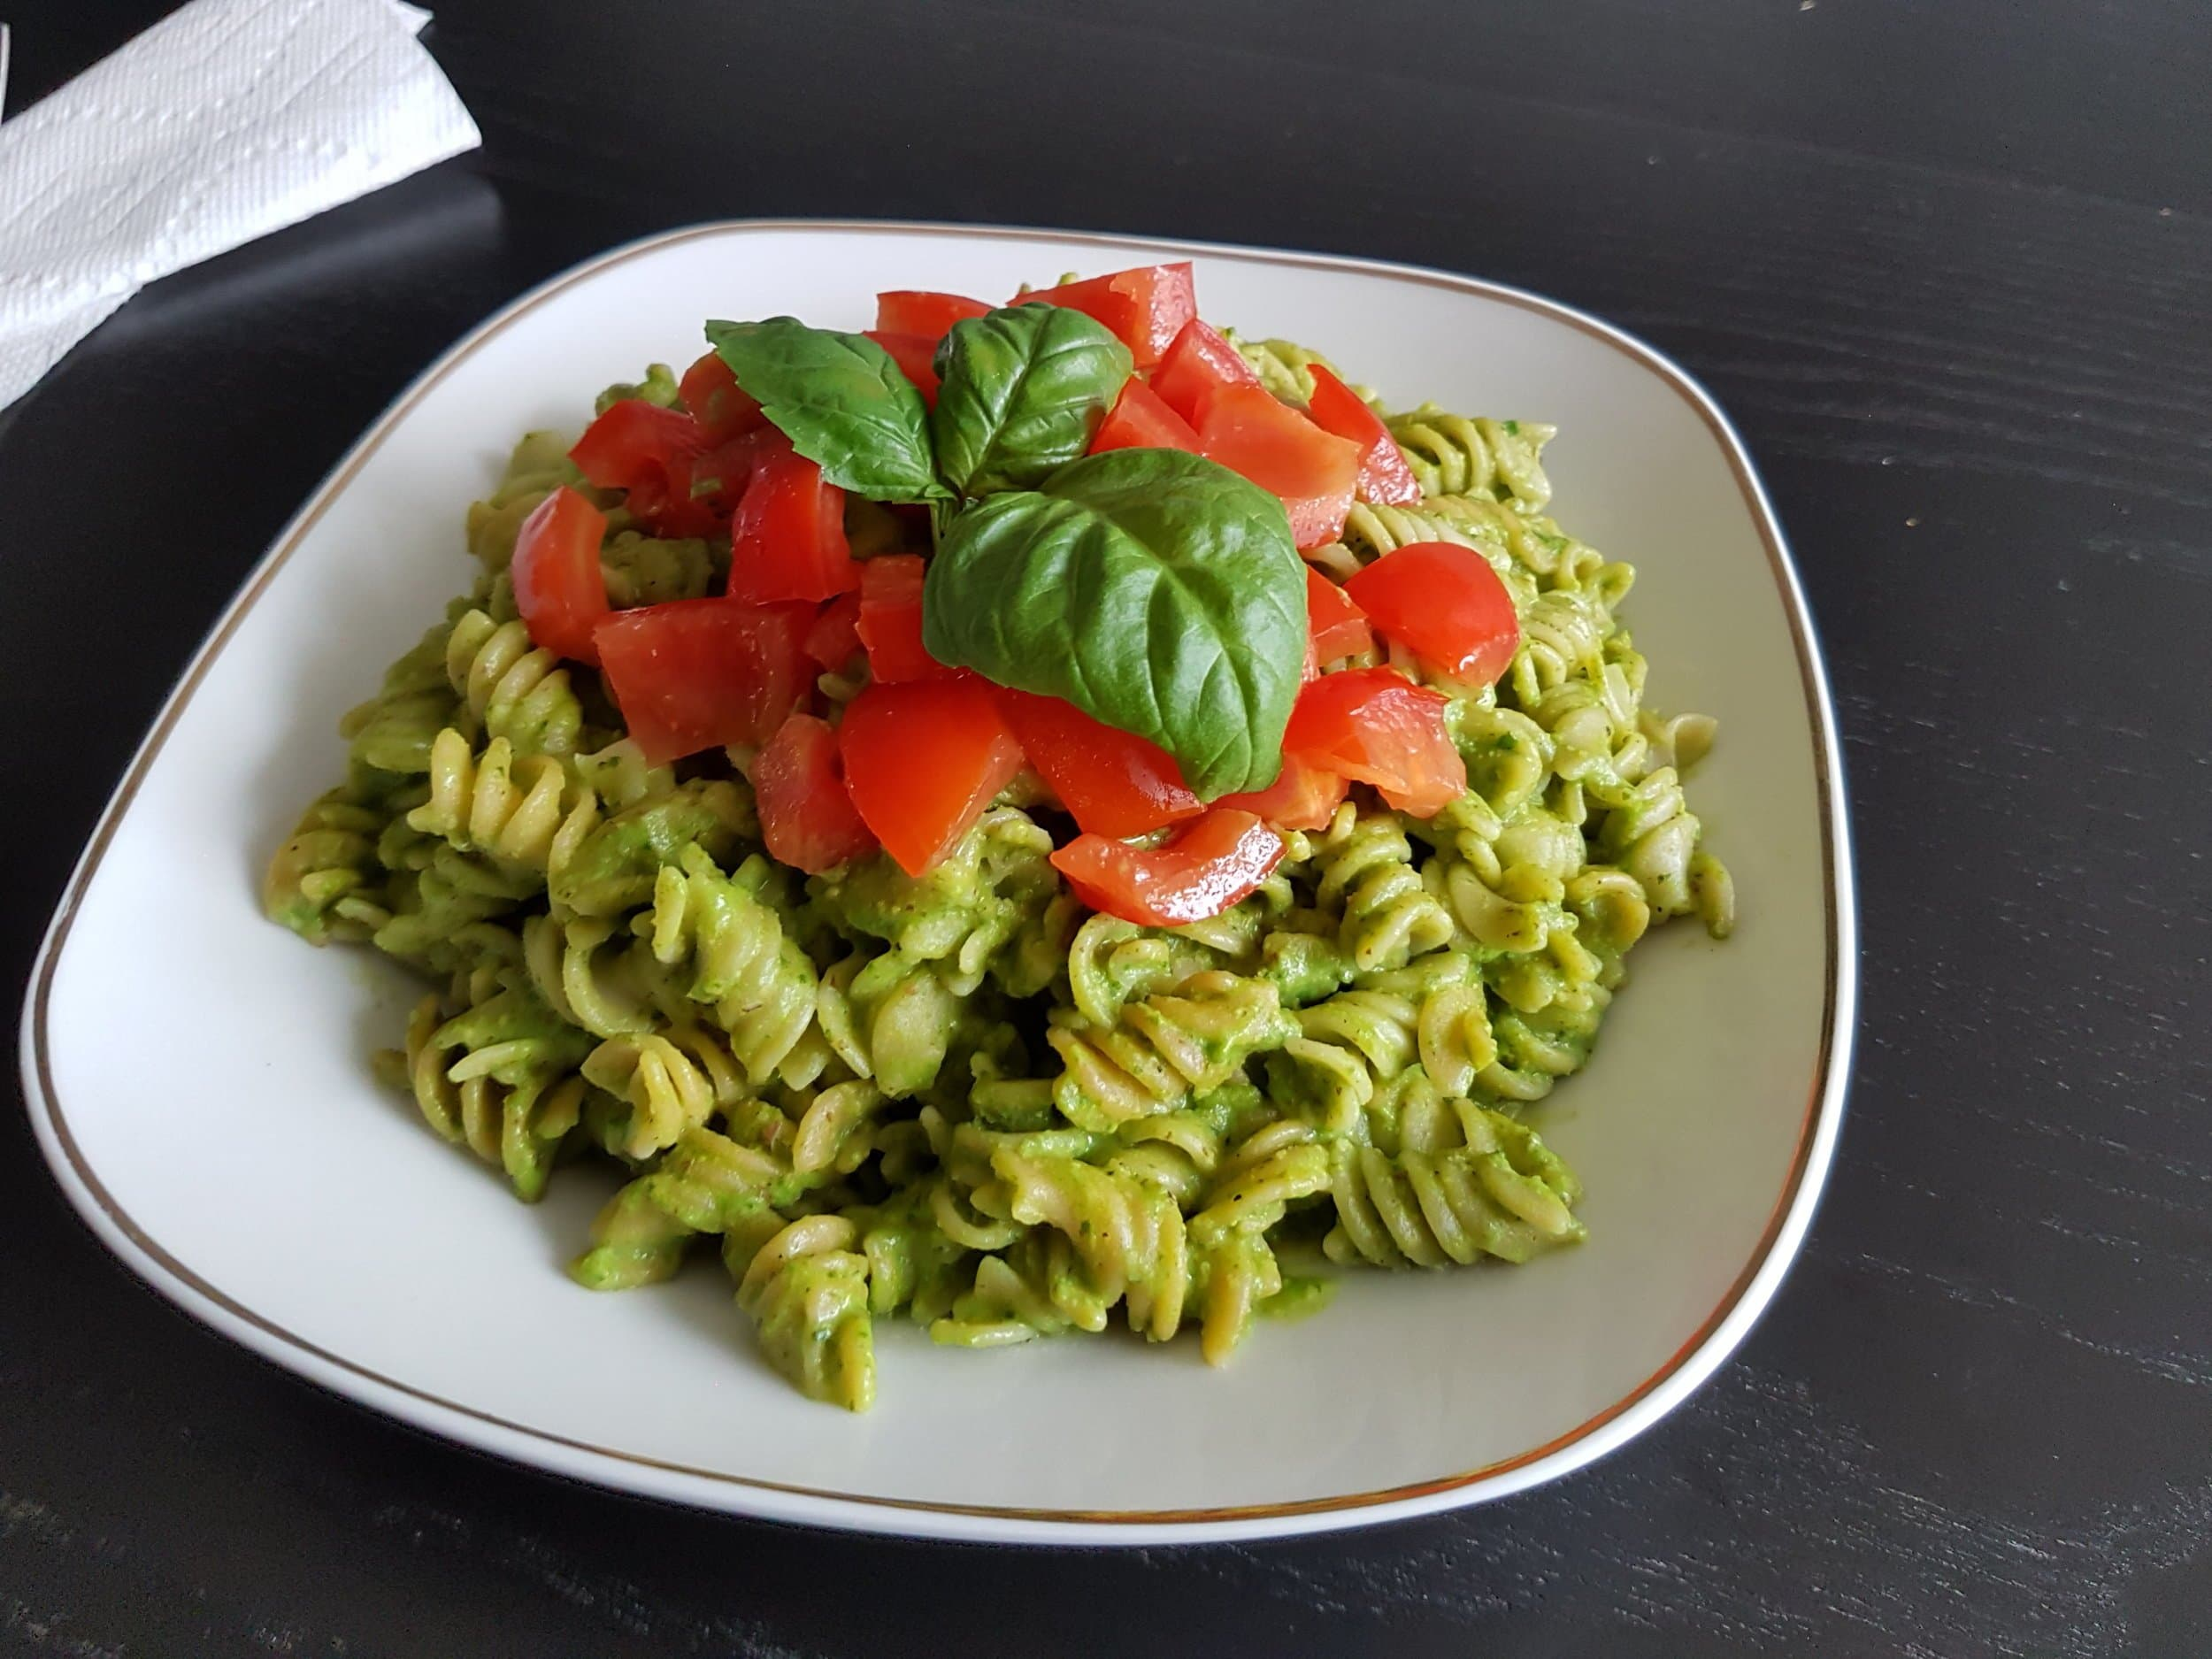 A plate of Vegan Avocado Pesto Pasta.